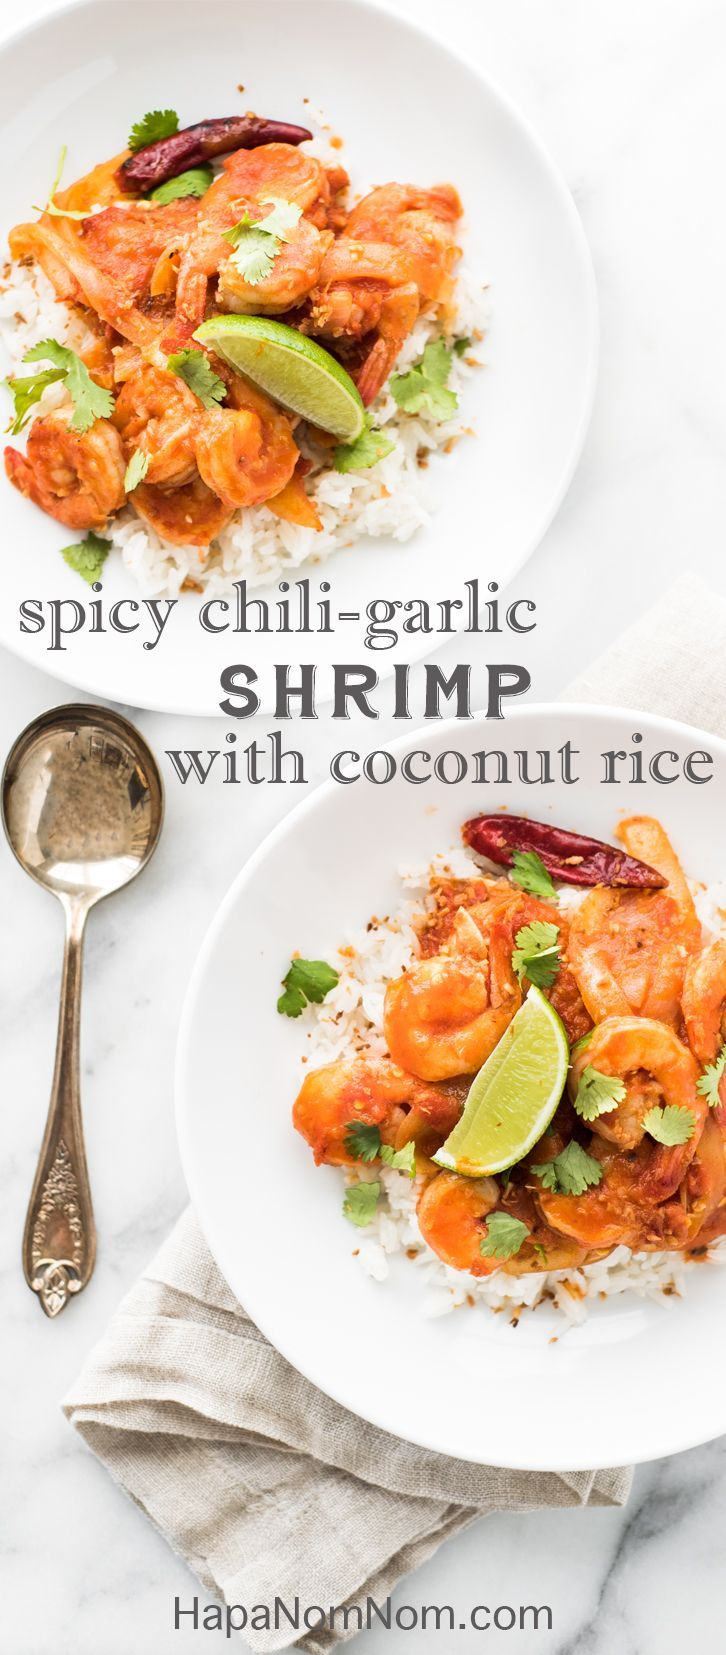 Lime, Coconut, & Shrimp - the Trifecta is Compete in This Burmese-Inspired Spicy Chili Garlic Shrimp with Coconut Rice and a Squeeze of Fresh Lime. Healthy and Totally Delicious!